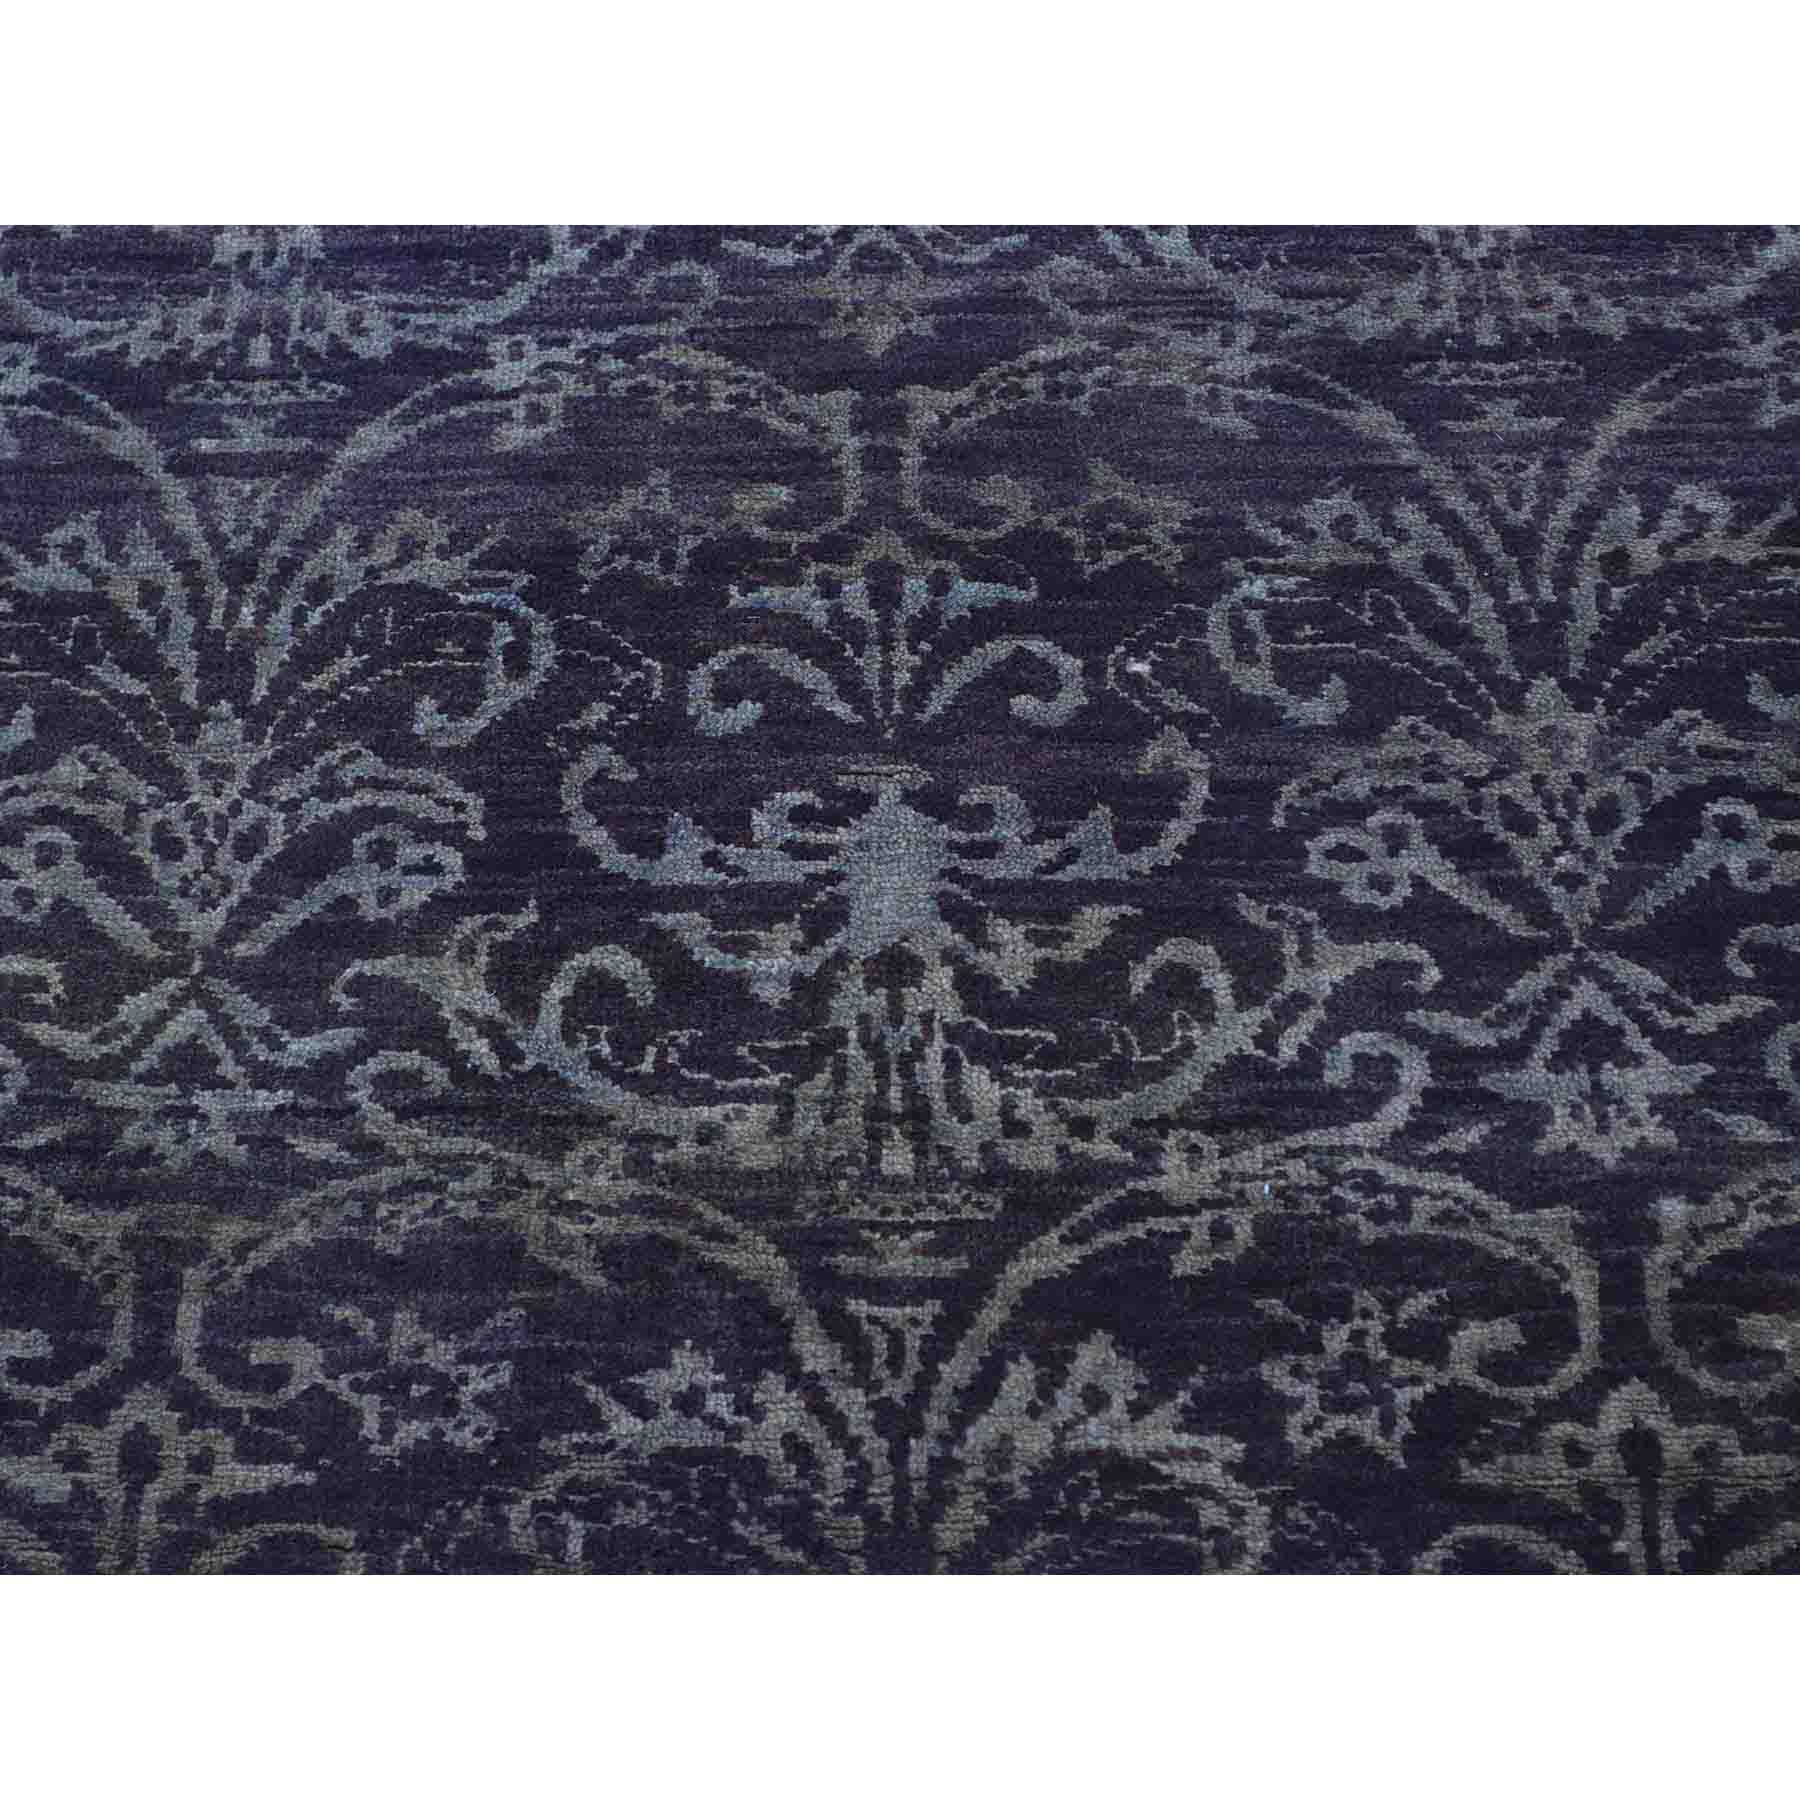 Modern-Contemporary-Hand-Knotted-Rug-136170